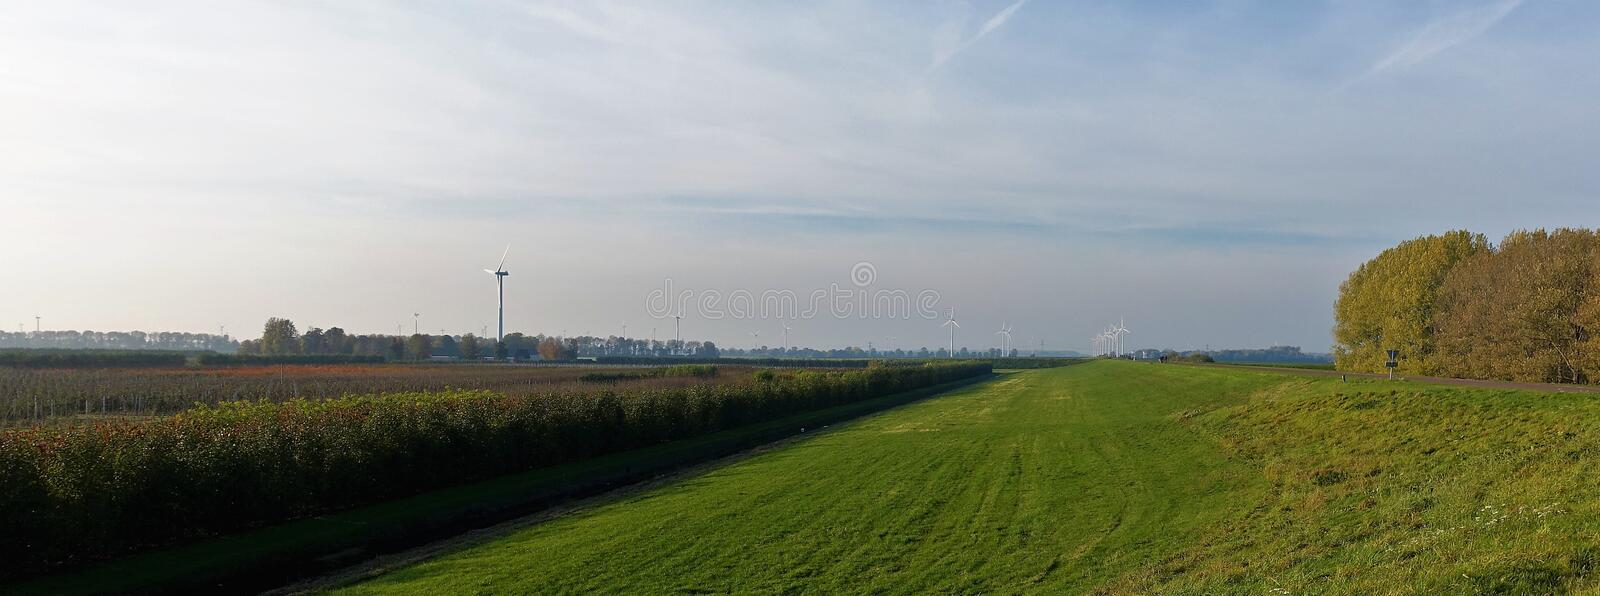 Polder landscape in Flevoland. The landscape of Zeewolde Flevoland contains the dike, open space, agriculture, the sky, trees and windmills stock photo